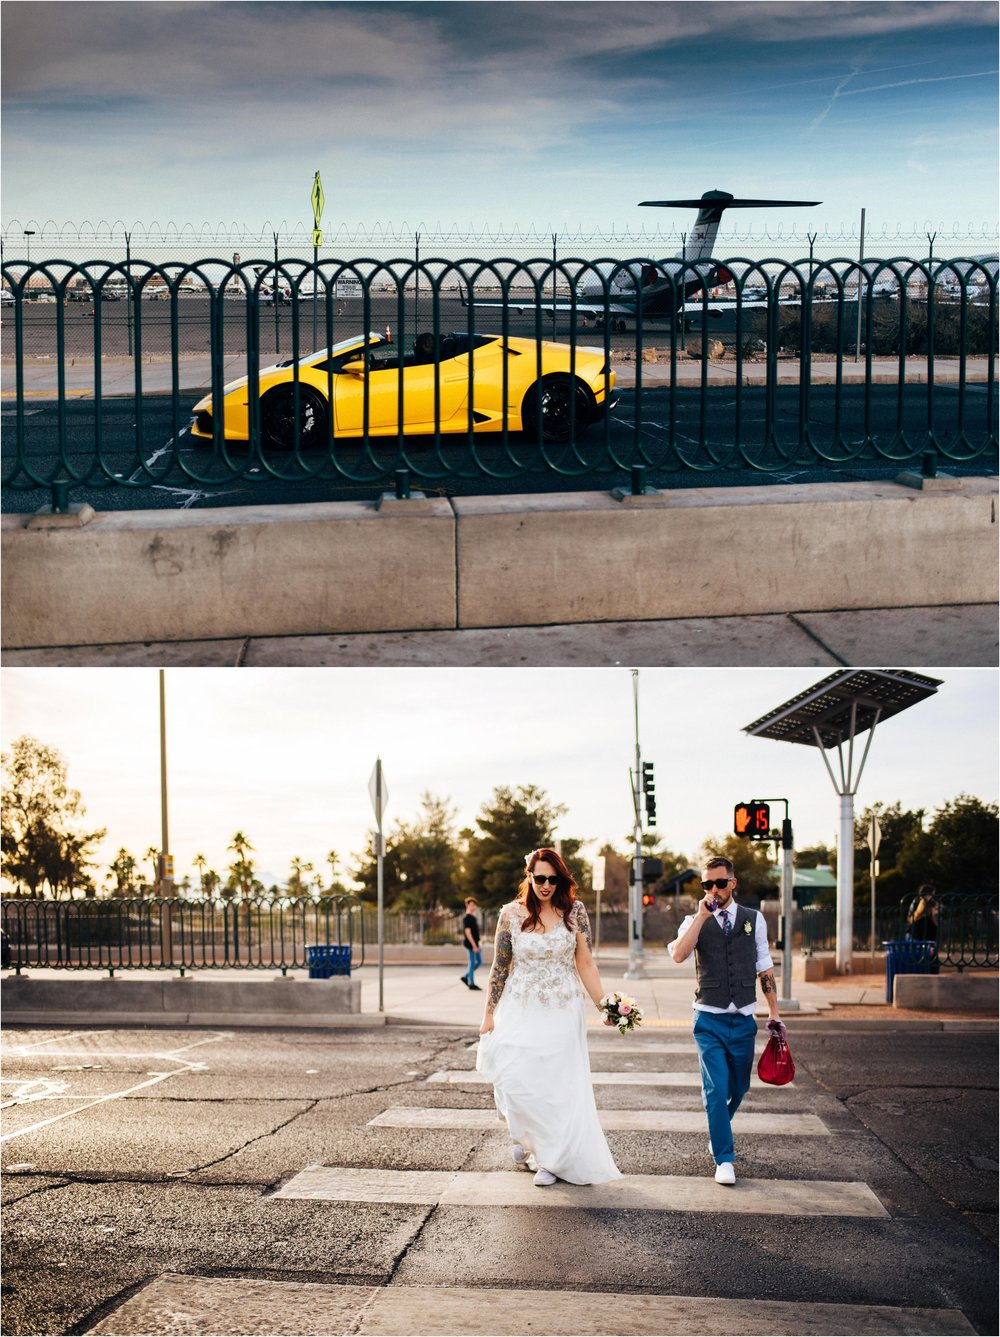 Vegas elopement destination wedding photographer_0139.jpg